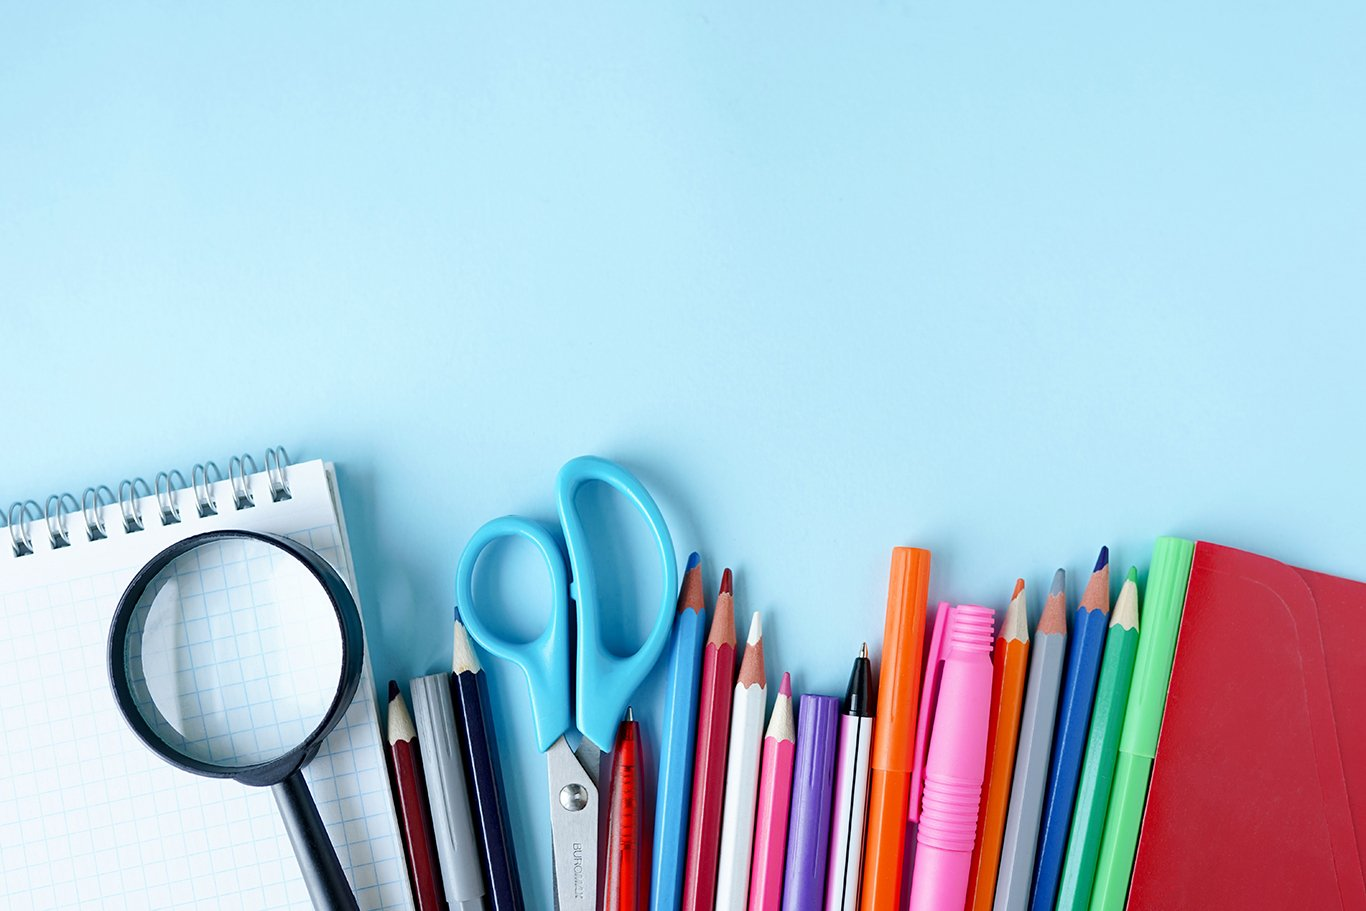 Colorful stationary school supplies example image 1